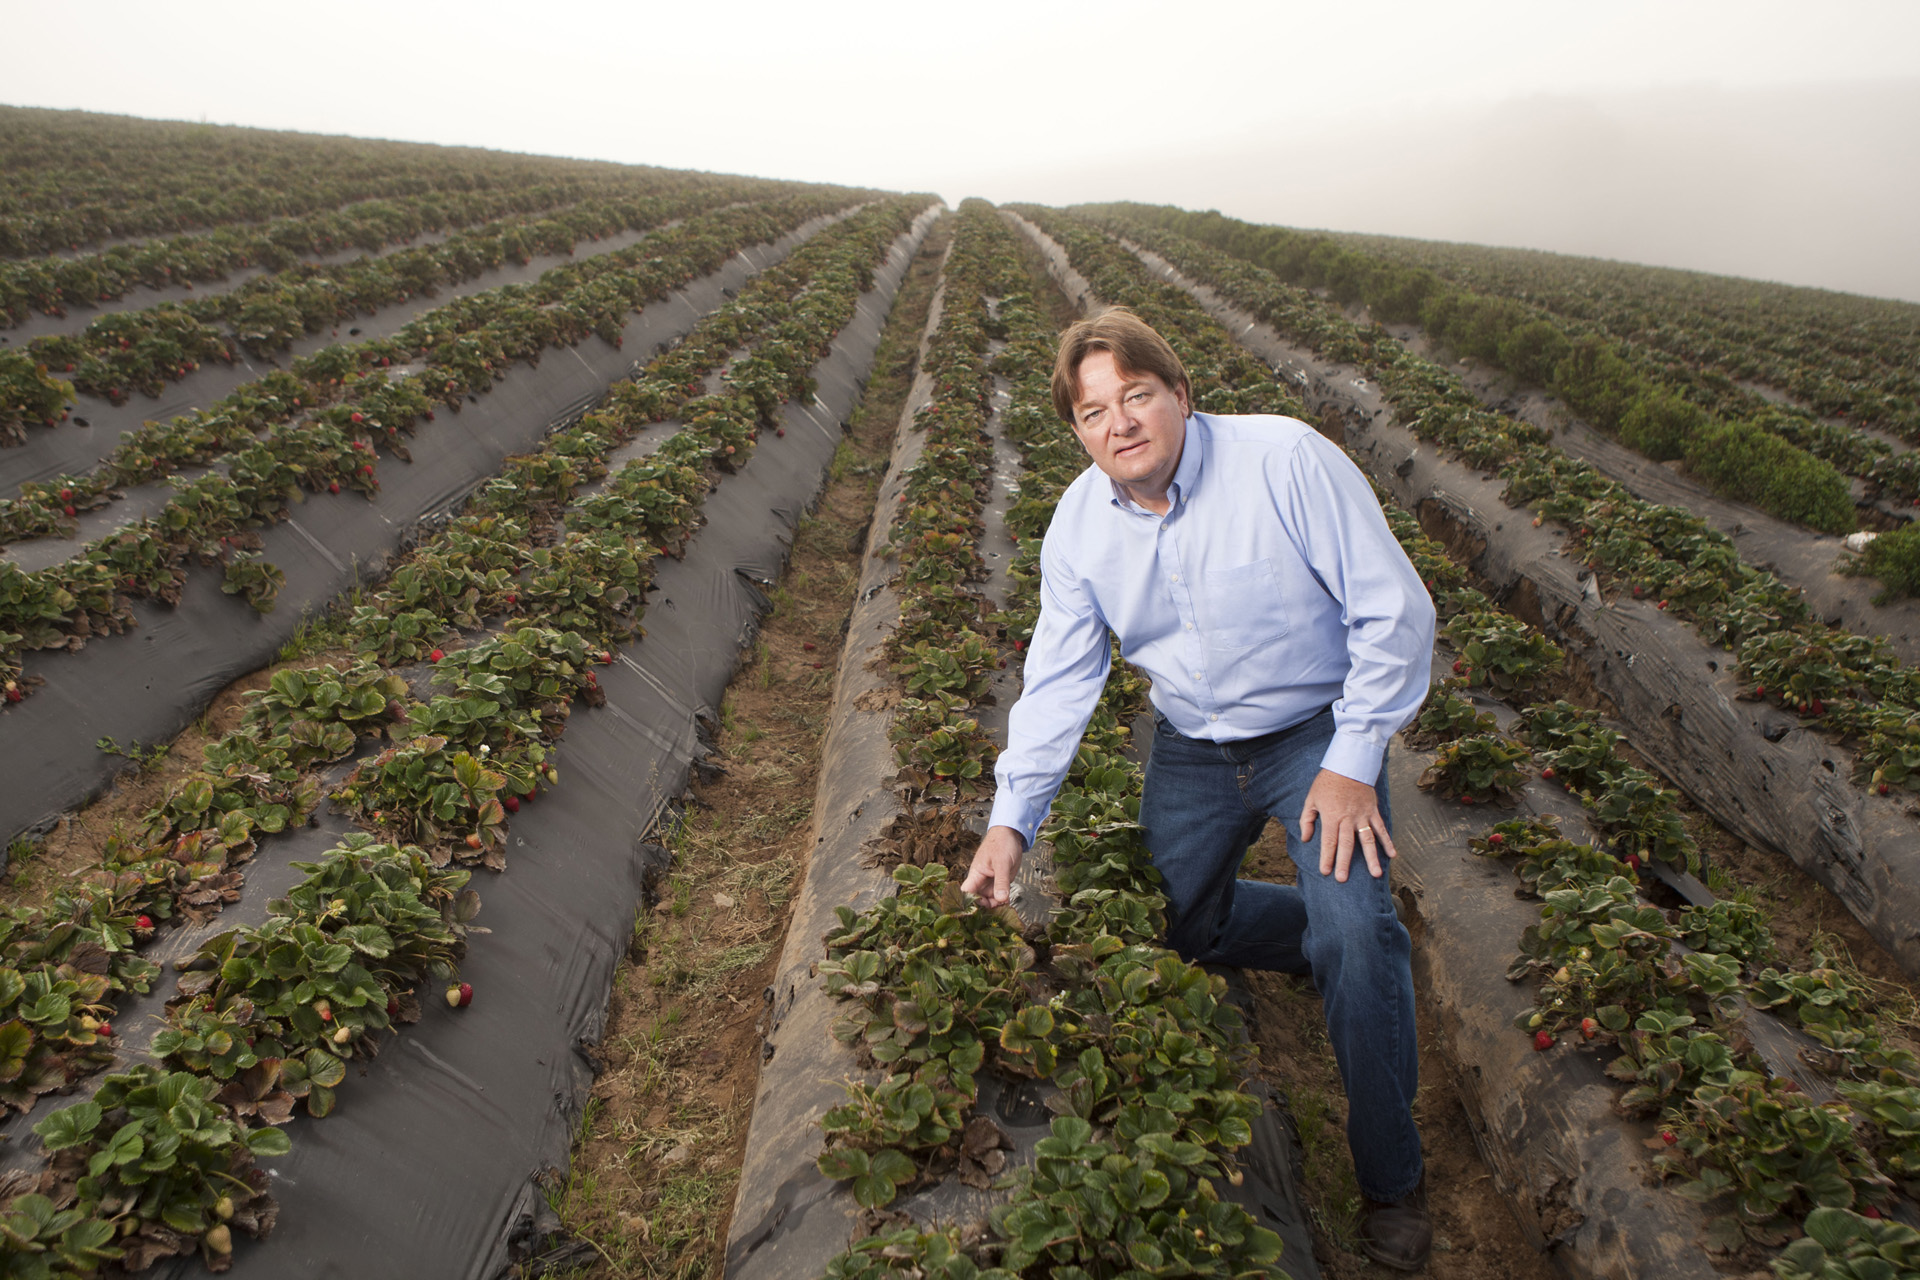 Mike Sharp, General Manager of Pacific Gold Farms